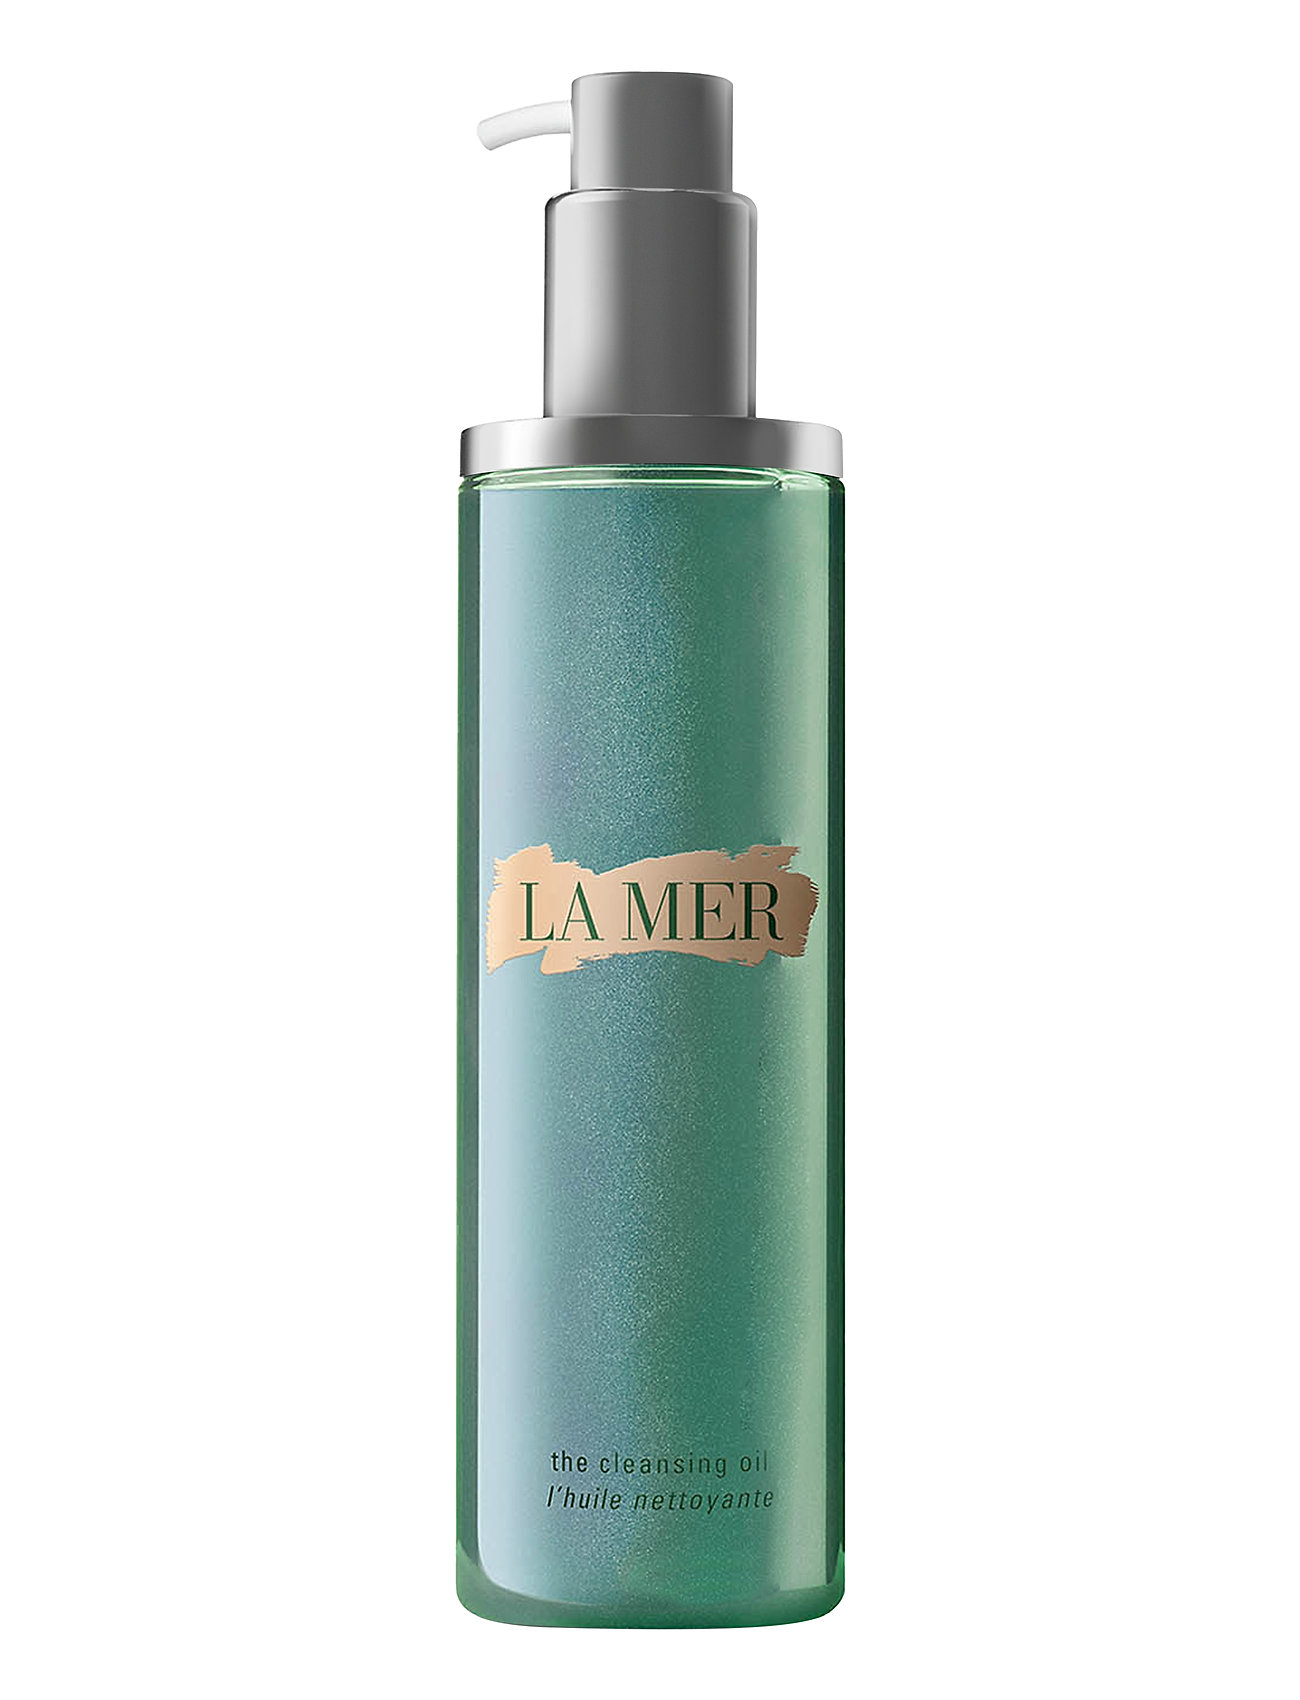 Image of The Cleansing Oil Beauty WOMEN Skin Care Face Cleansers Cleansing Gel Nude La Mer (3259120281)